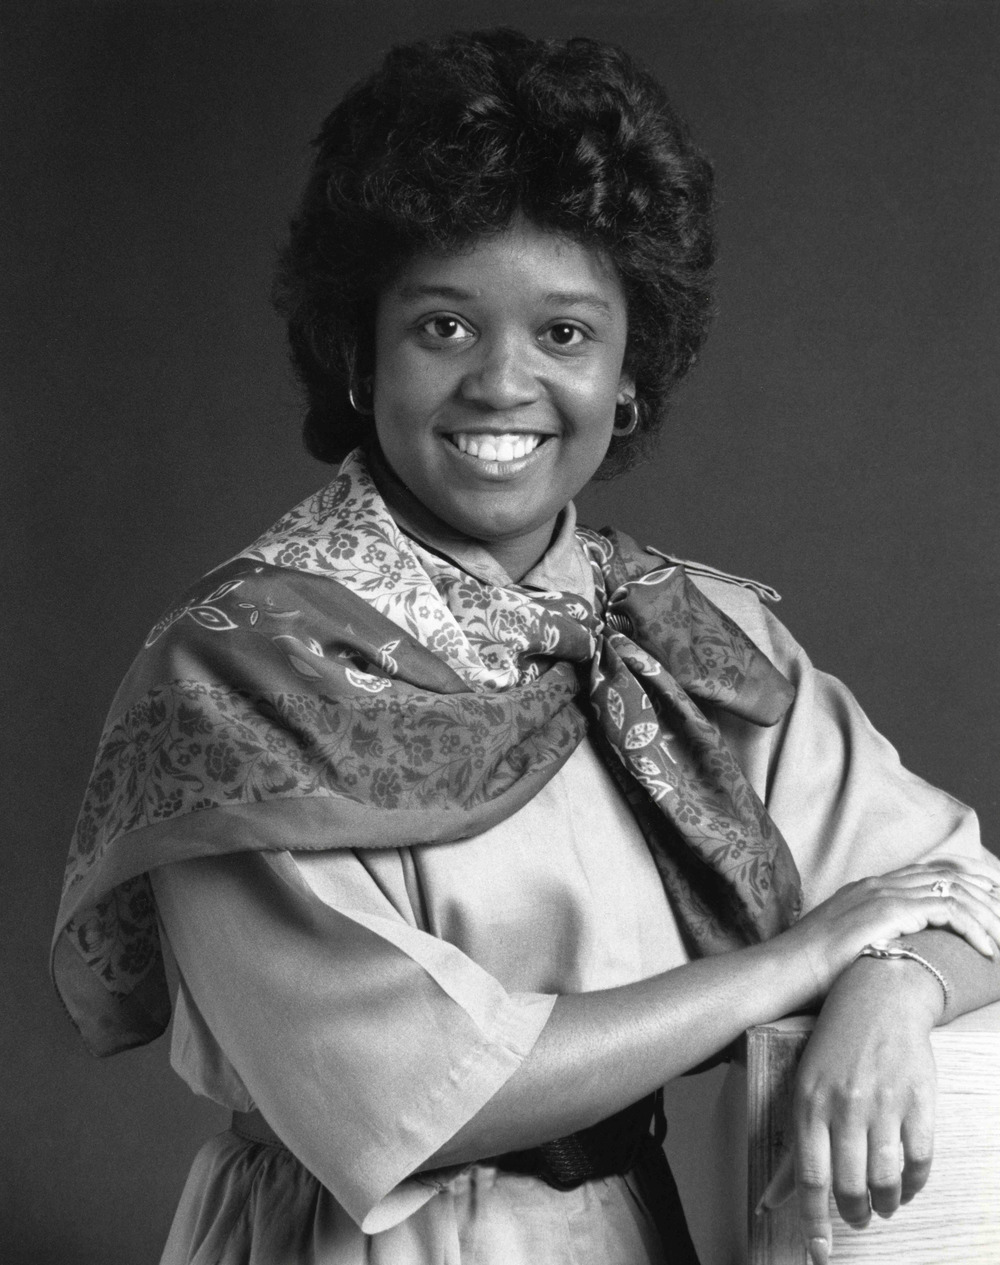 AT&T Executive Portrait Sharon Williams  1.jpg